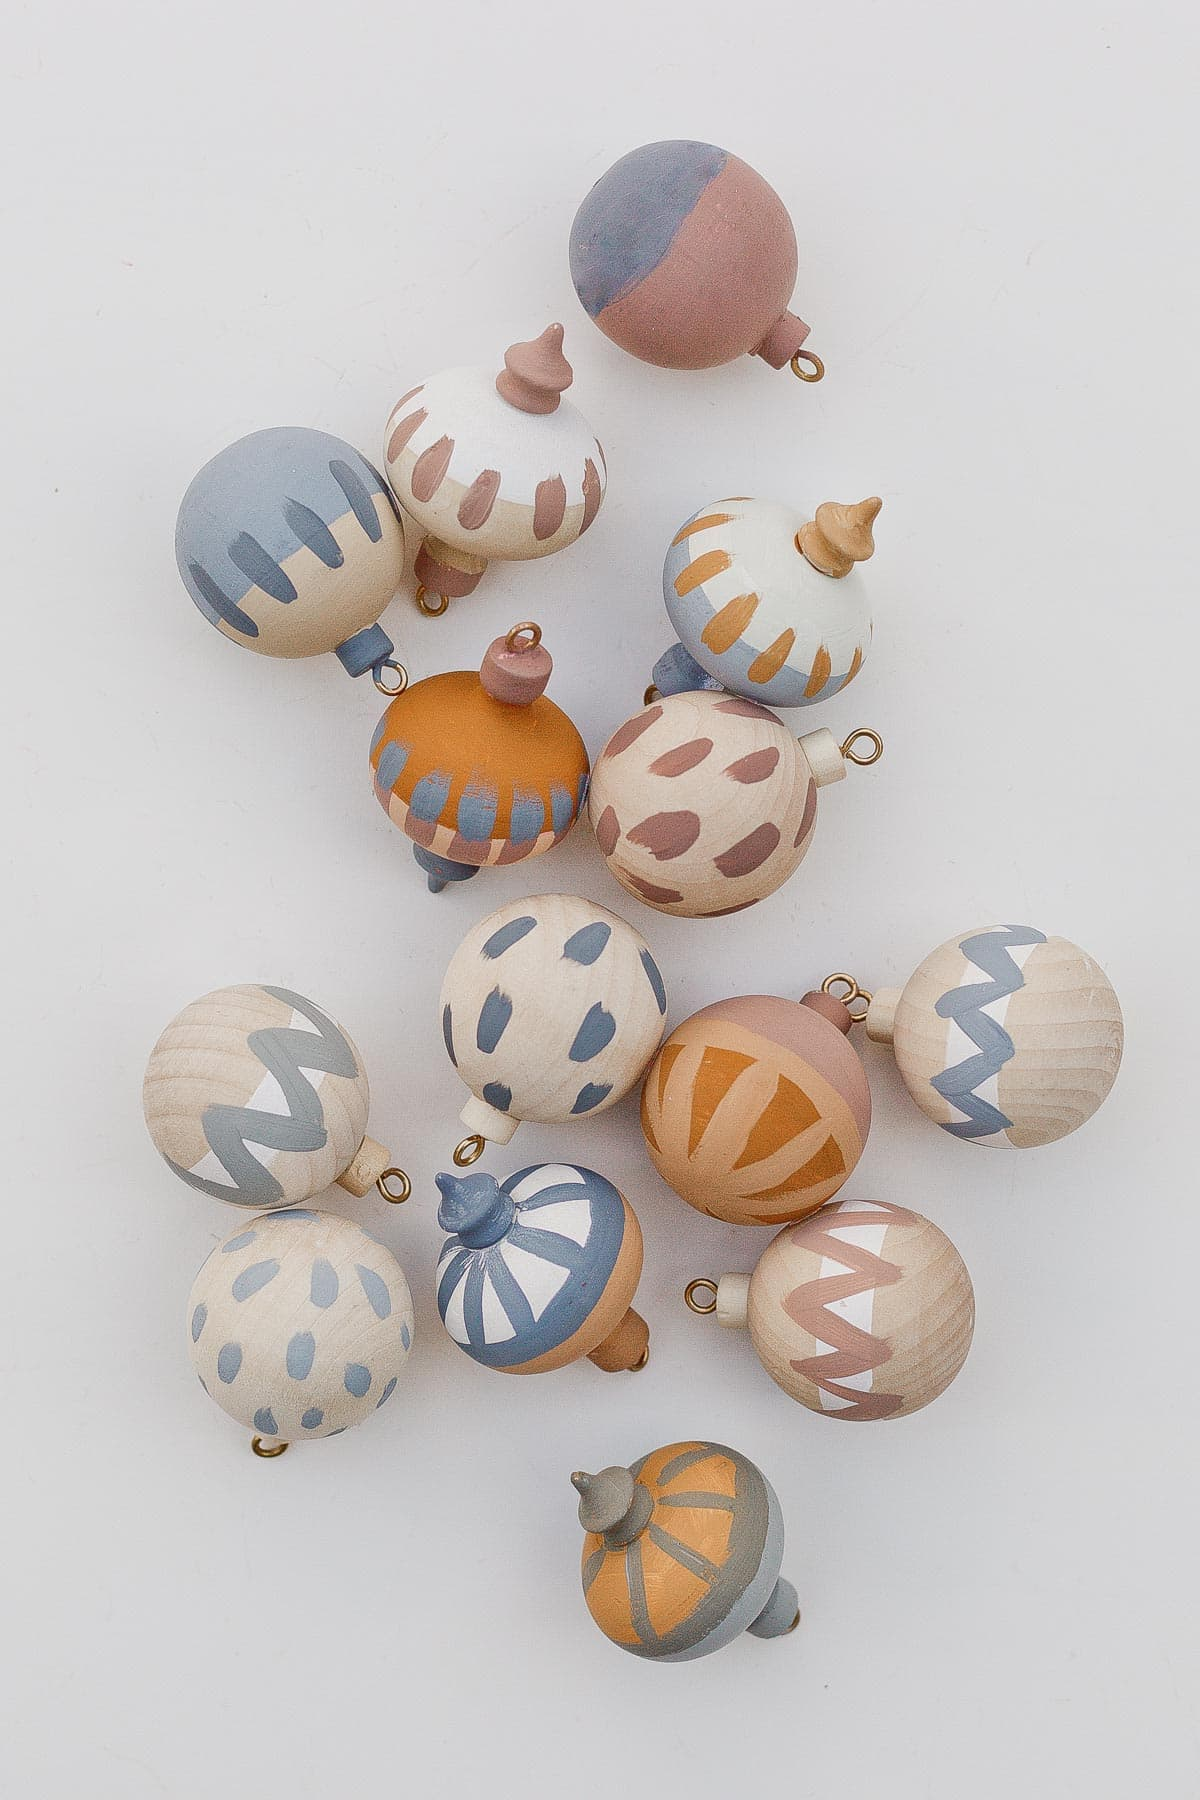 Minimal painted wood ornaments in earth tones.